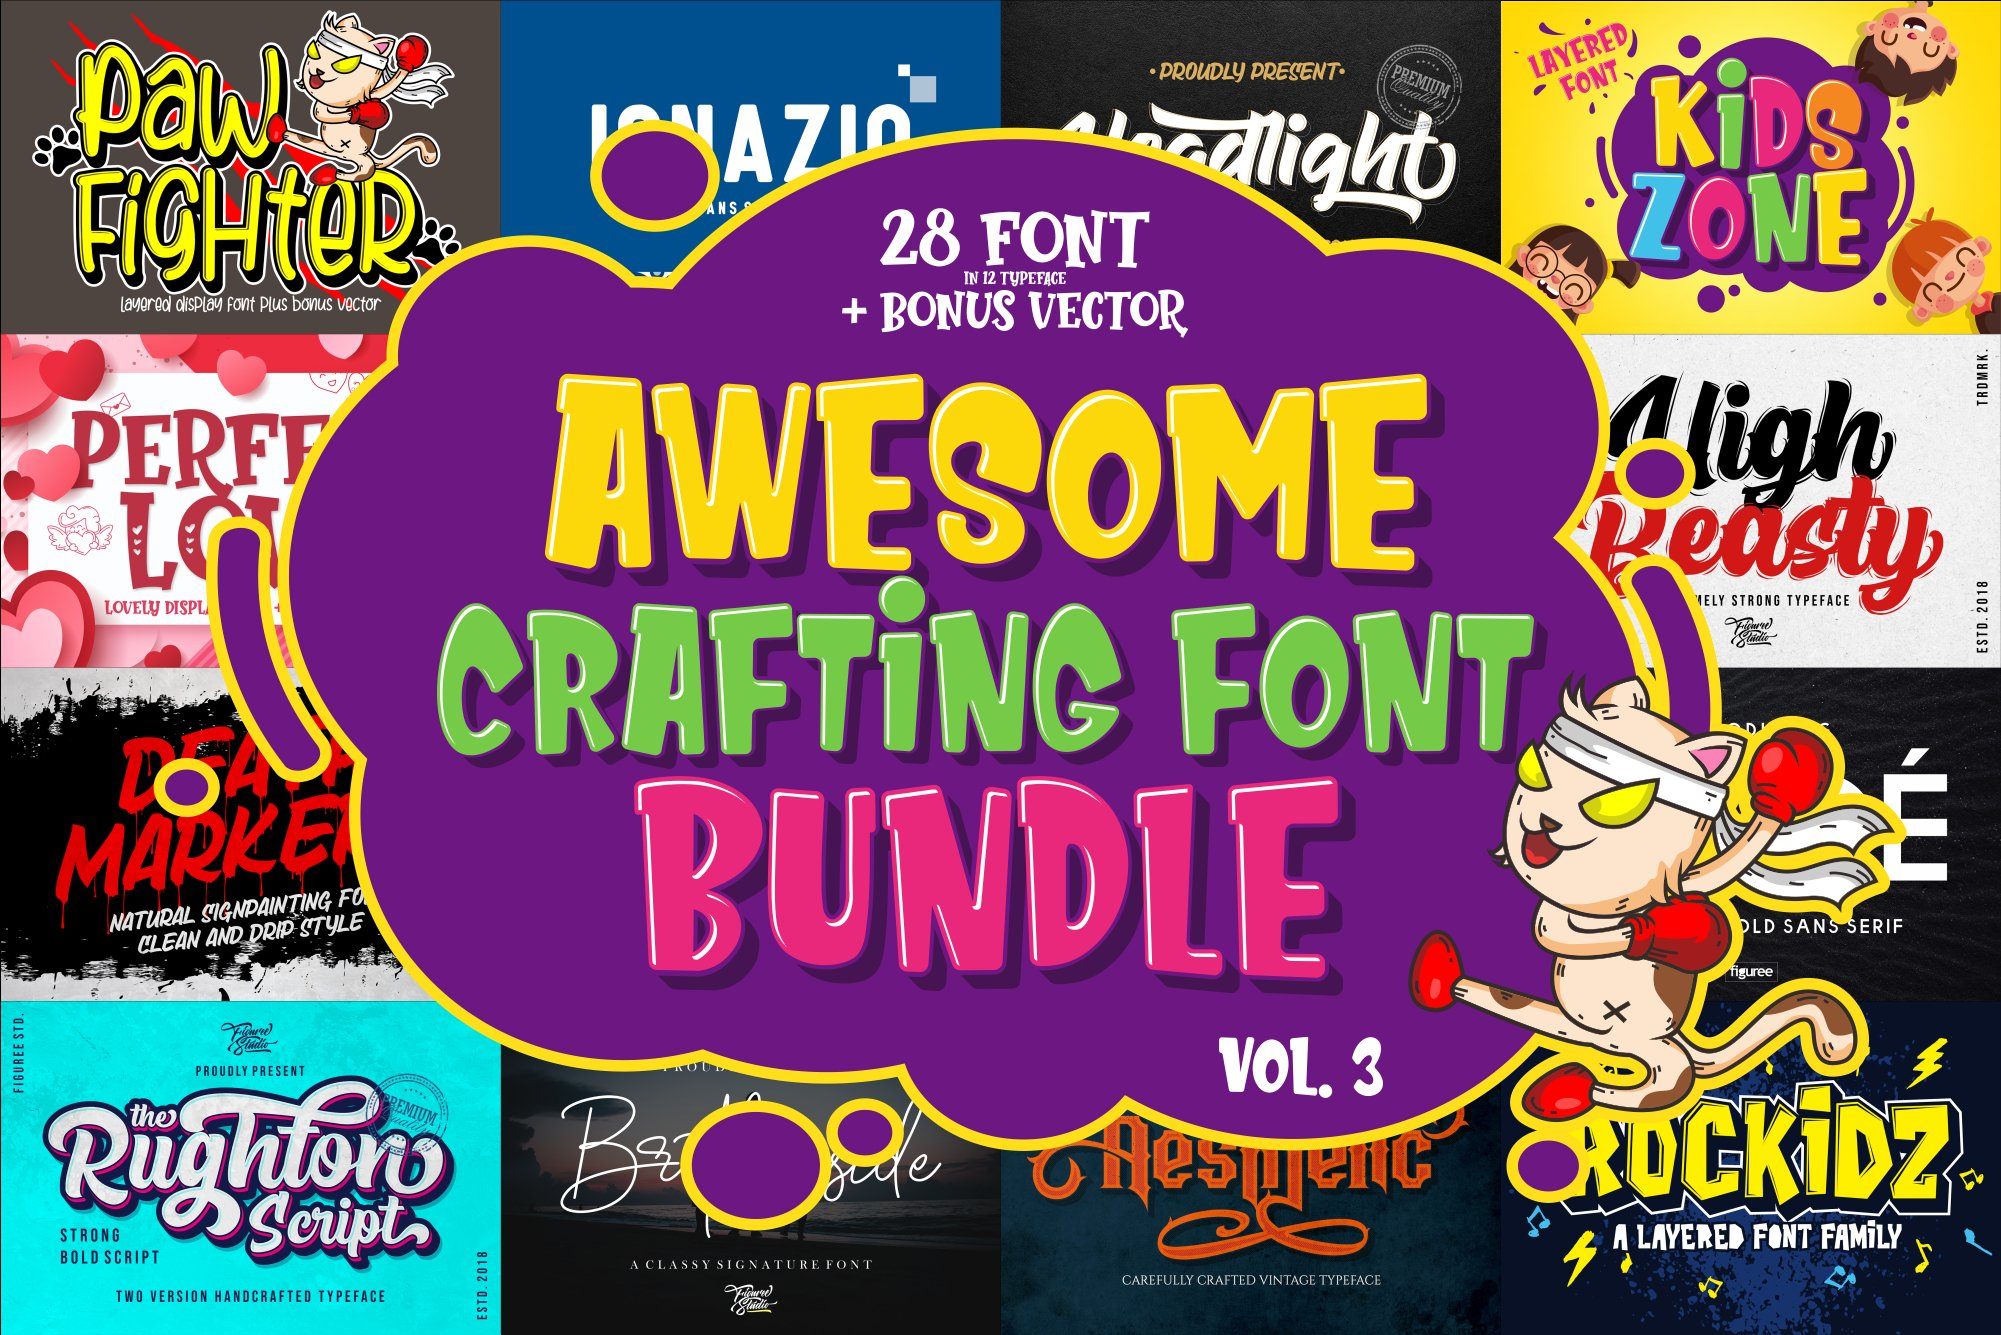 Awesome Crafting Font Bundle Vol. 3 (681390) | Display pertaining to Agp Font Awesome Collection